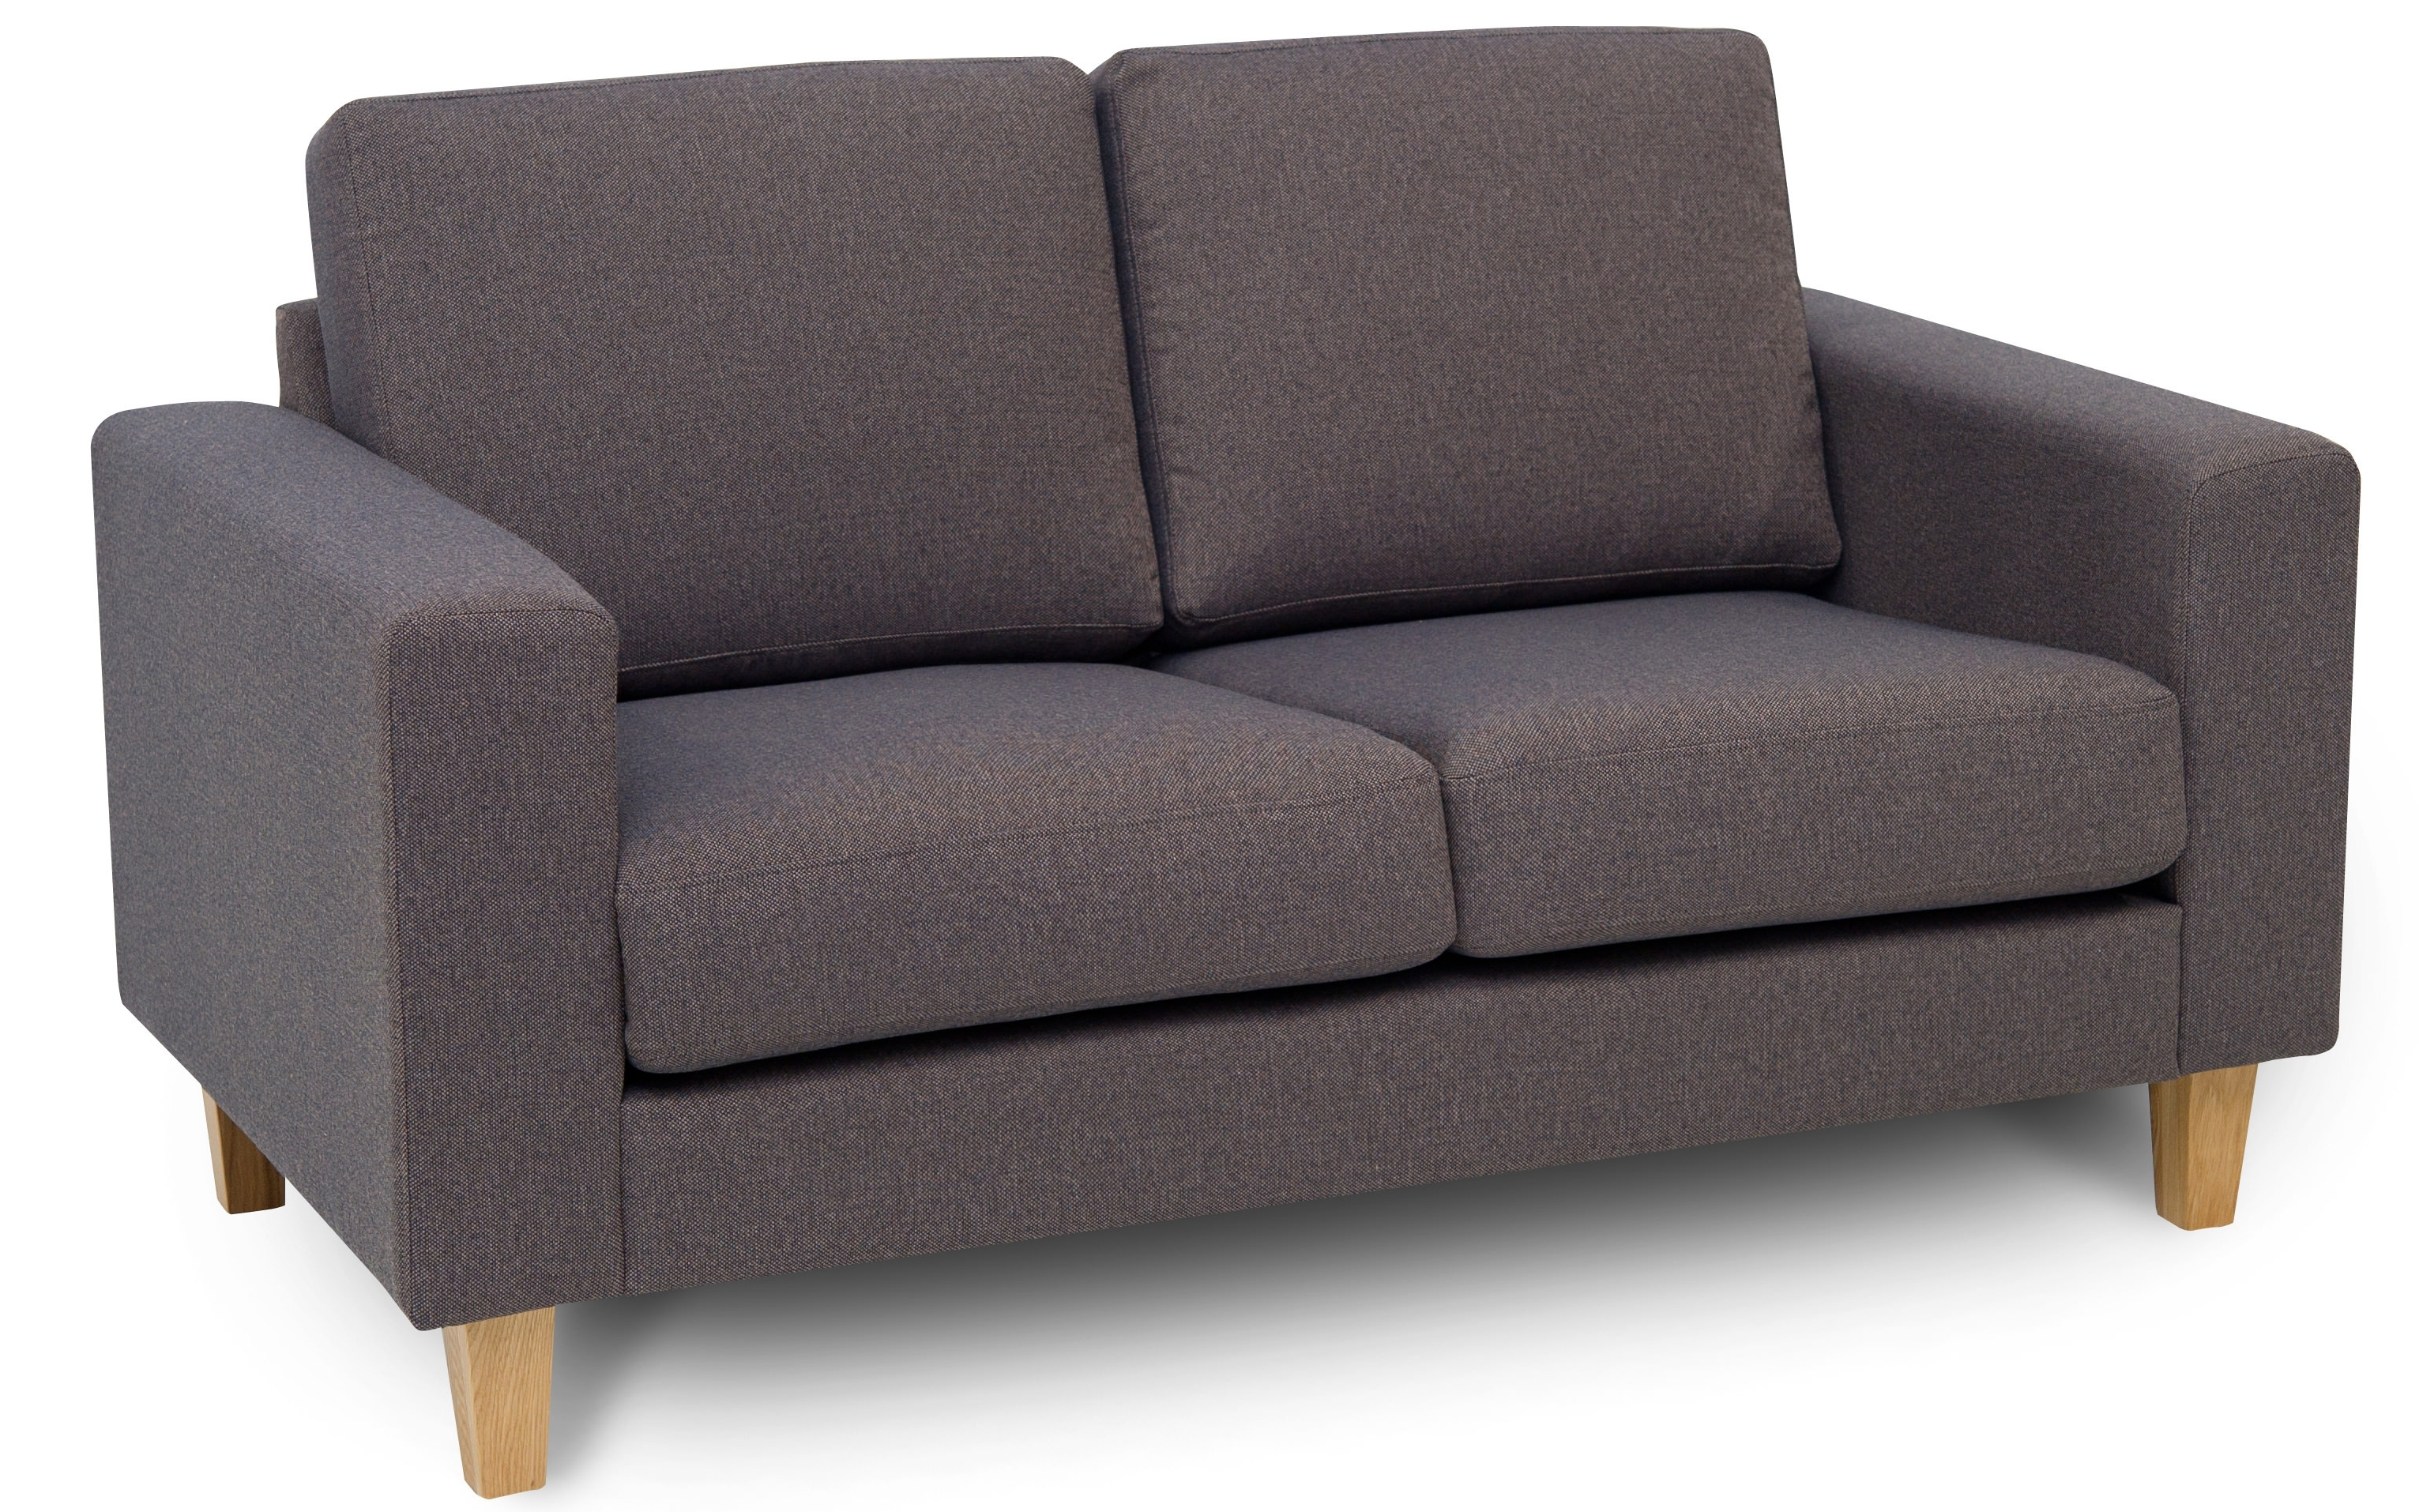 Designer Sofas (View 3 of 20)